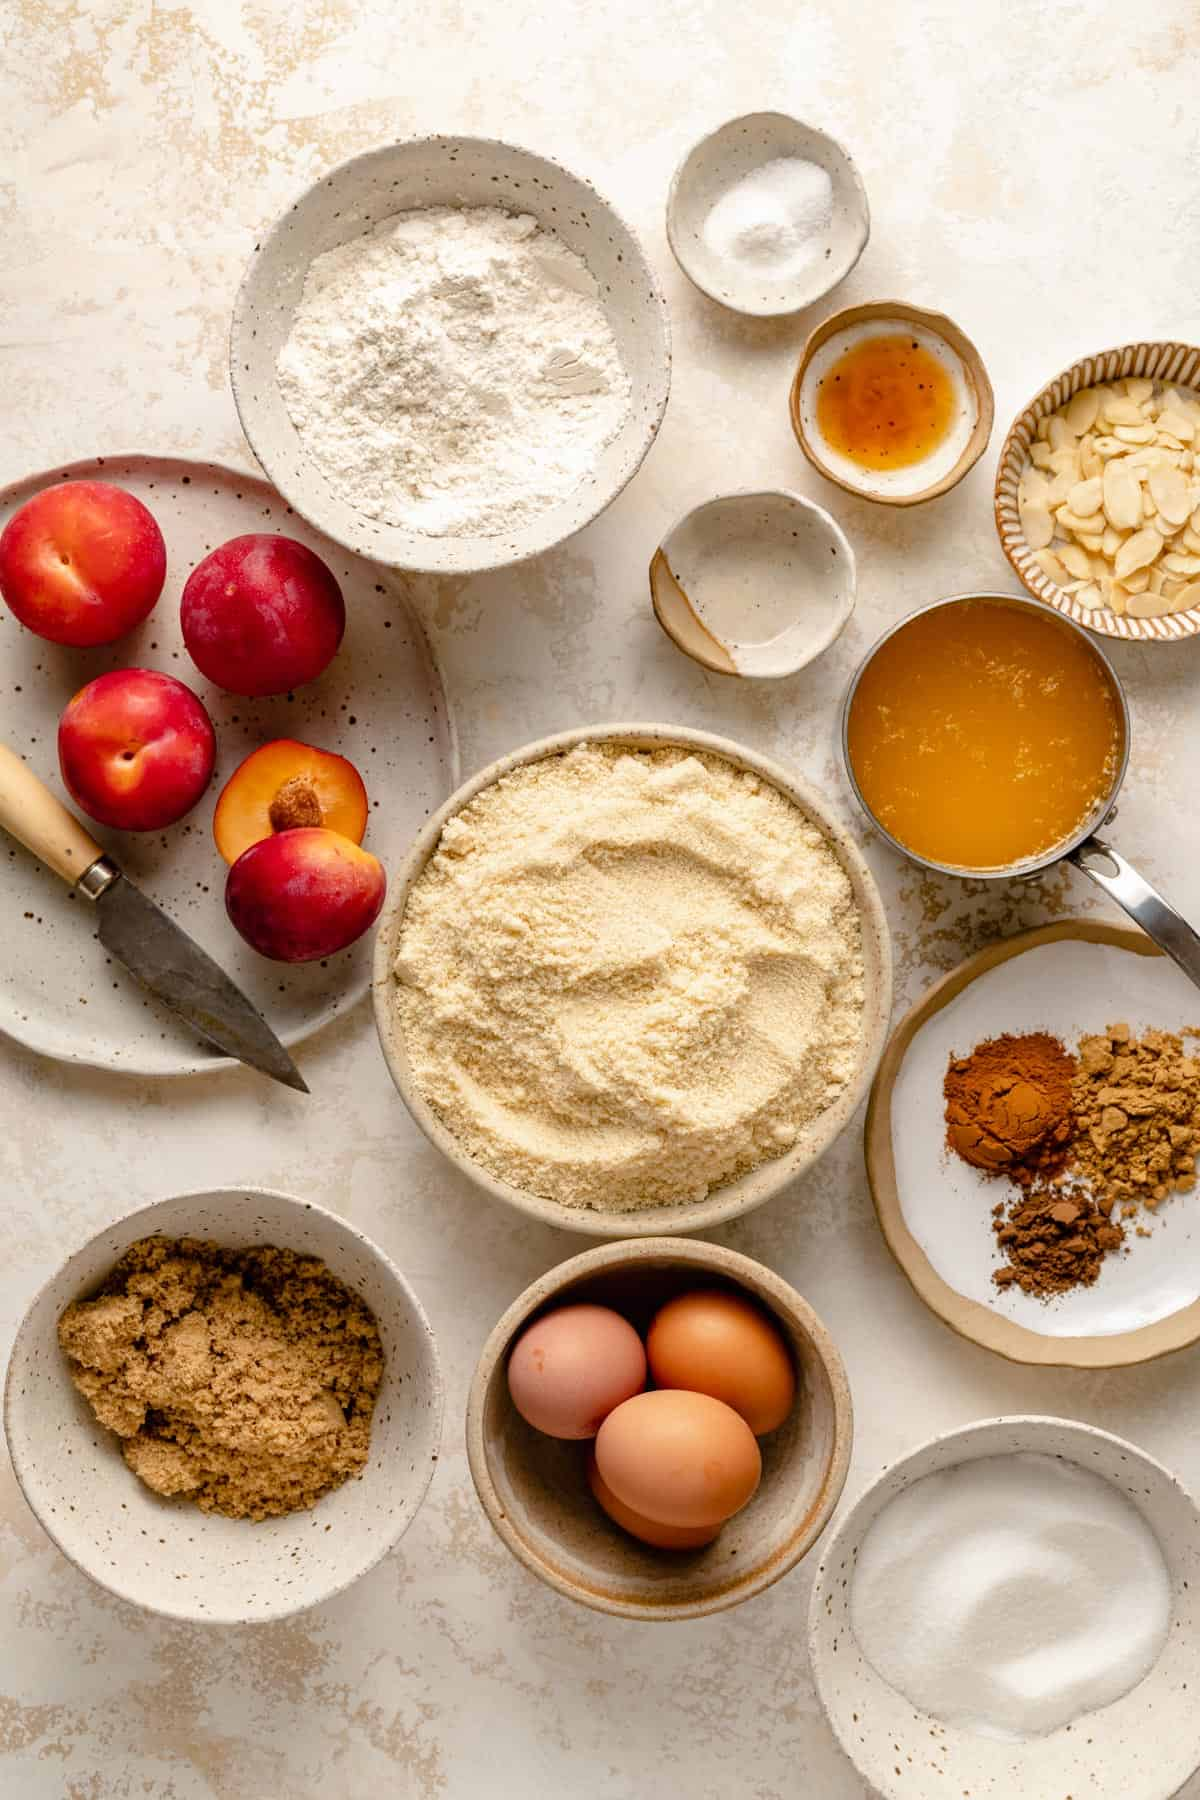 Ingredients required for the cake including almonds, plums, eggs, butter, spices and more